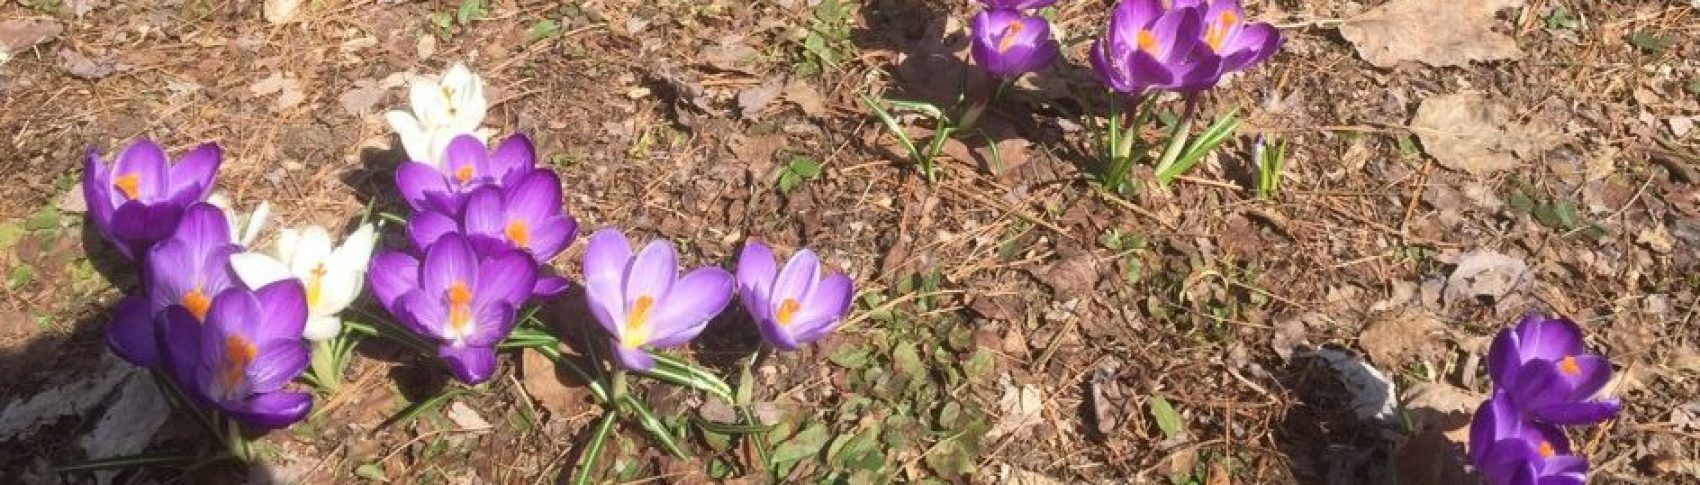 Early Spring flowers peaking through the ground in the backyard (Photo by Grace Denniss)